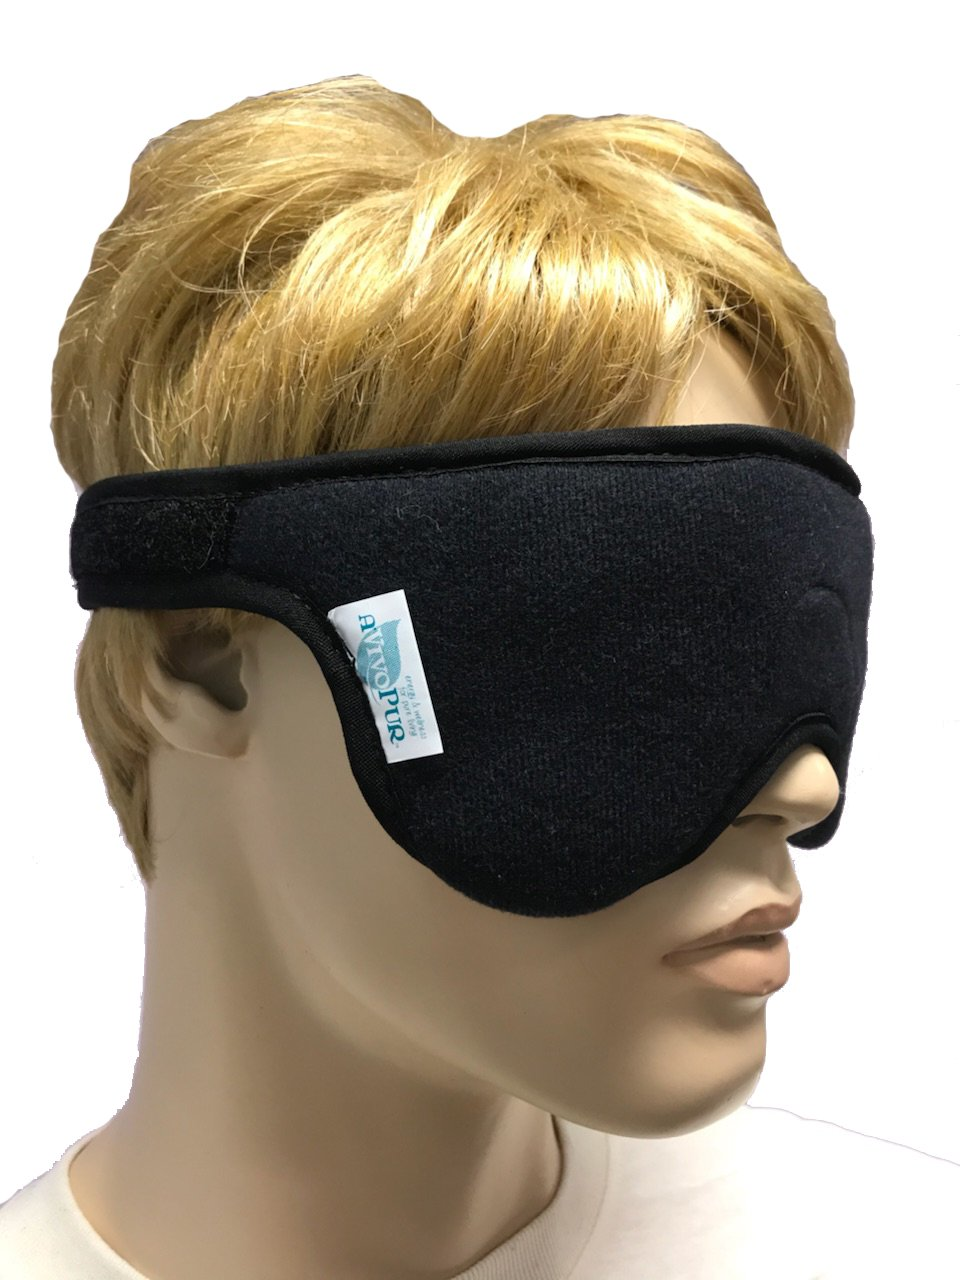 Sexual Wellness Hearty Ouch Eyemask From Naughty Girl Fantasy, Fetish & Accessories